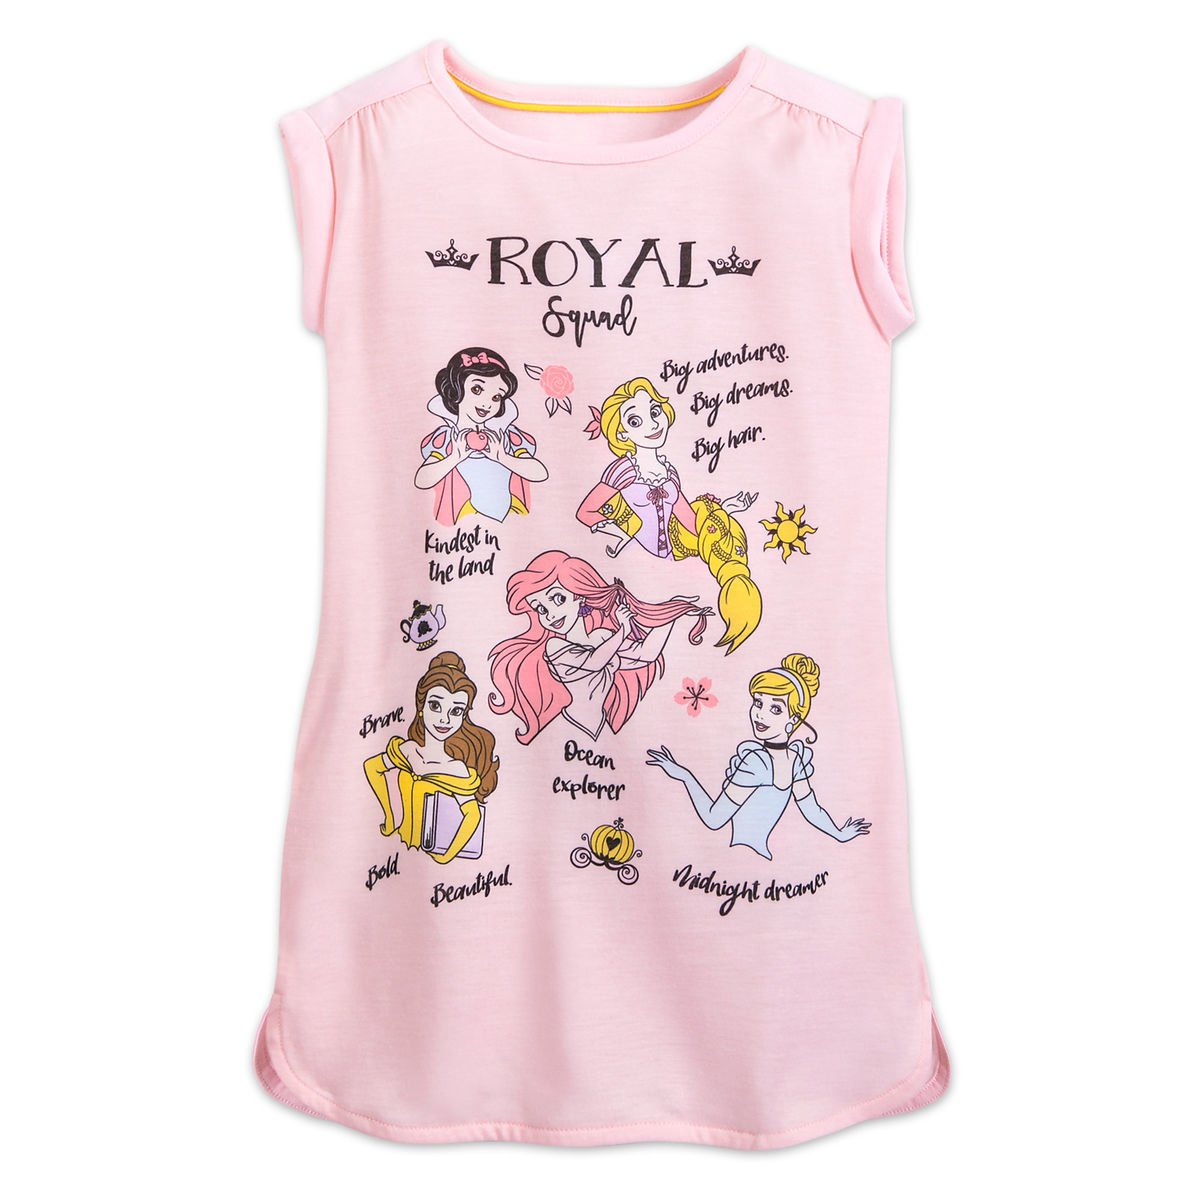 Disney Store Nightshirt Nightgown Princess Pink 2019 New 7/8